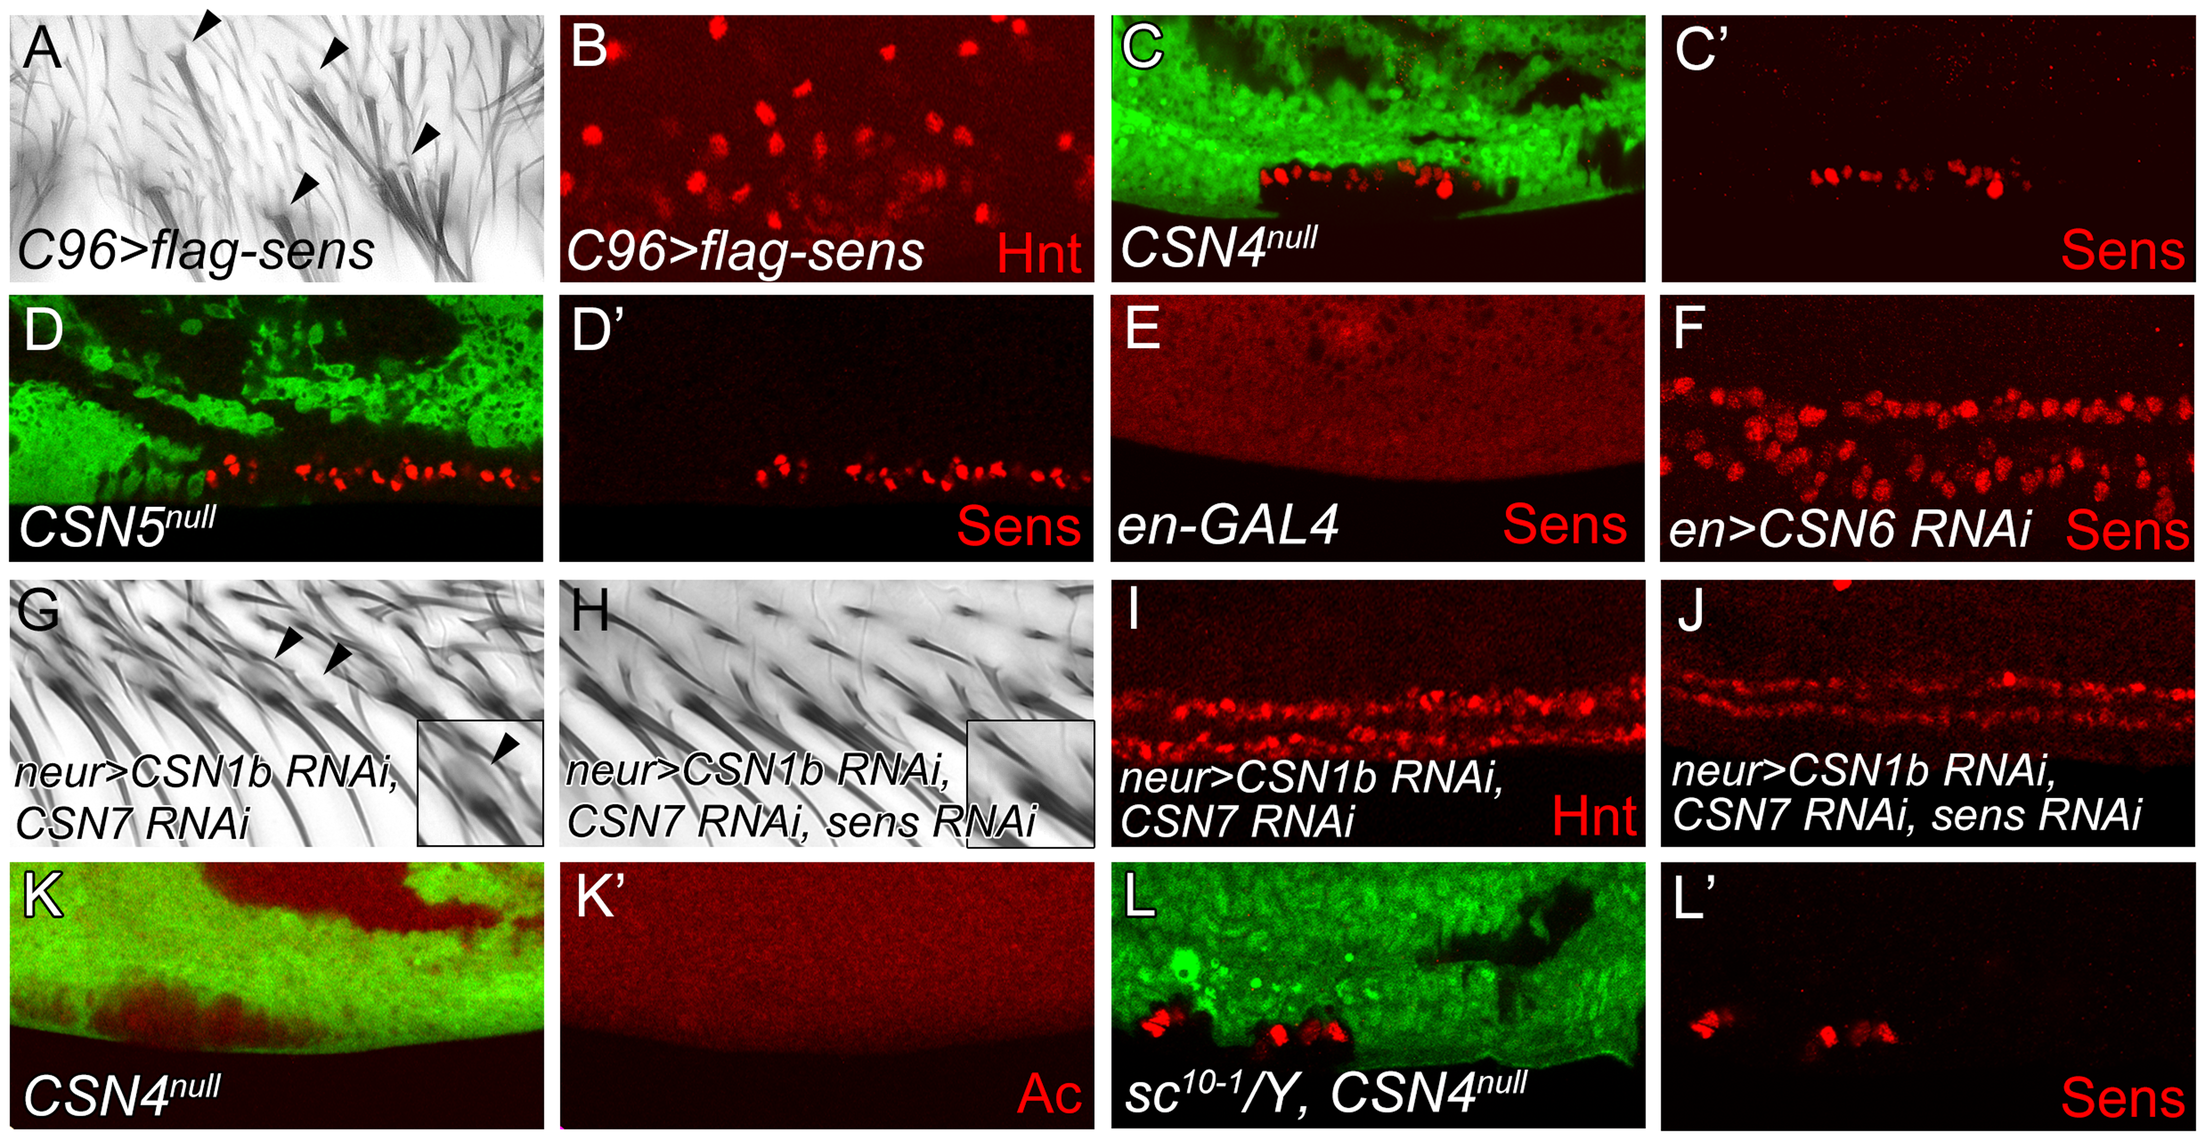 The CSN suppresses Sens to inhibit neural differentiation of PWM bristles.